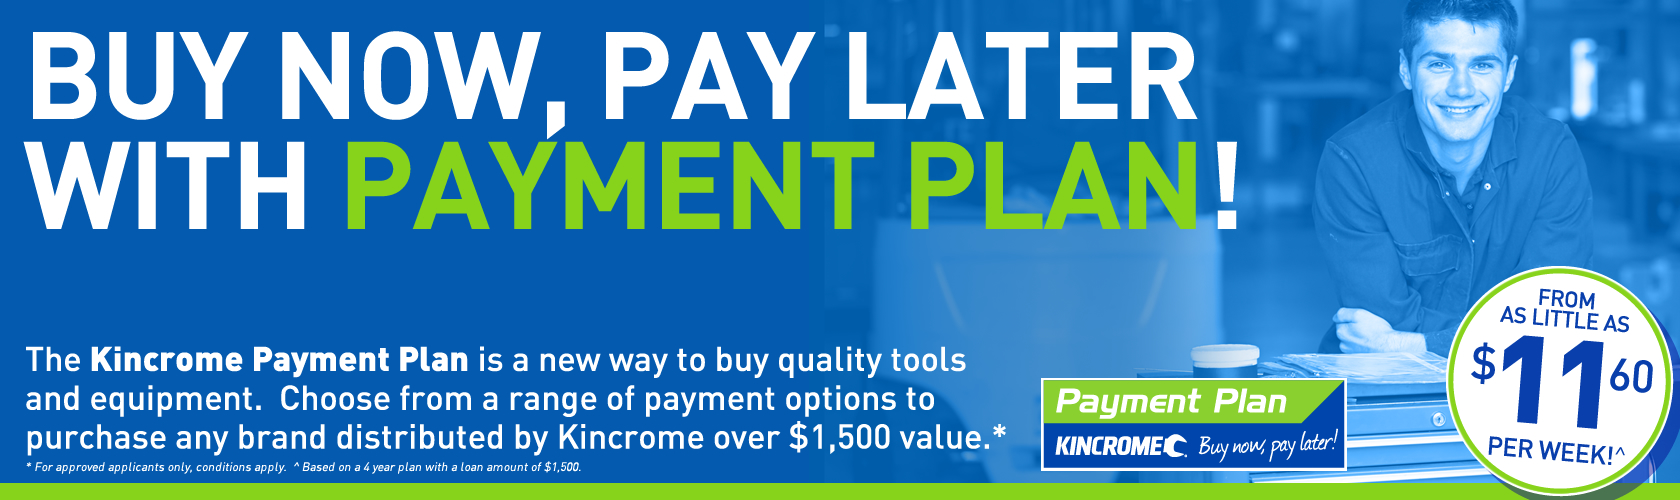 Payment-Plan About - Kincrome